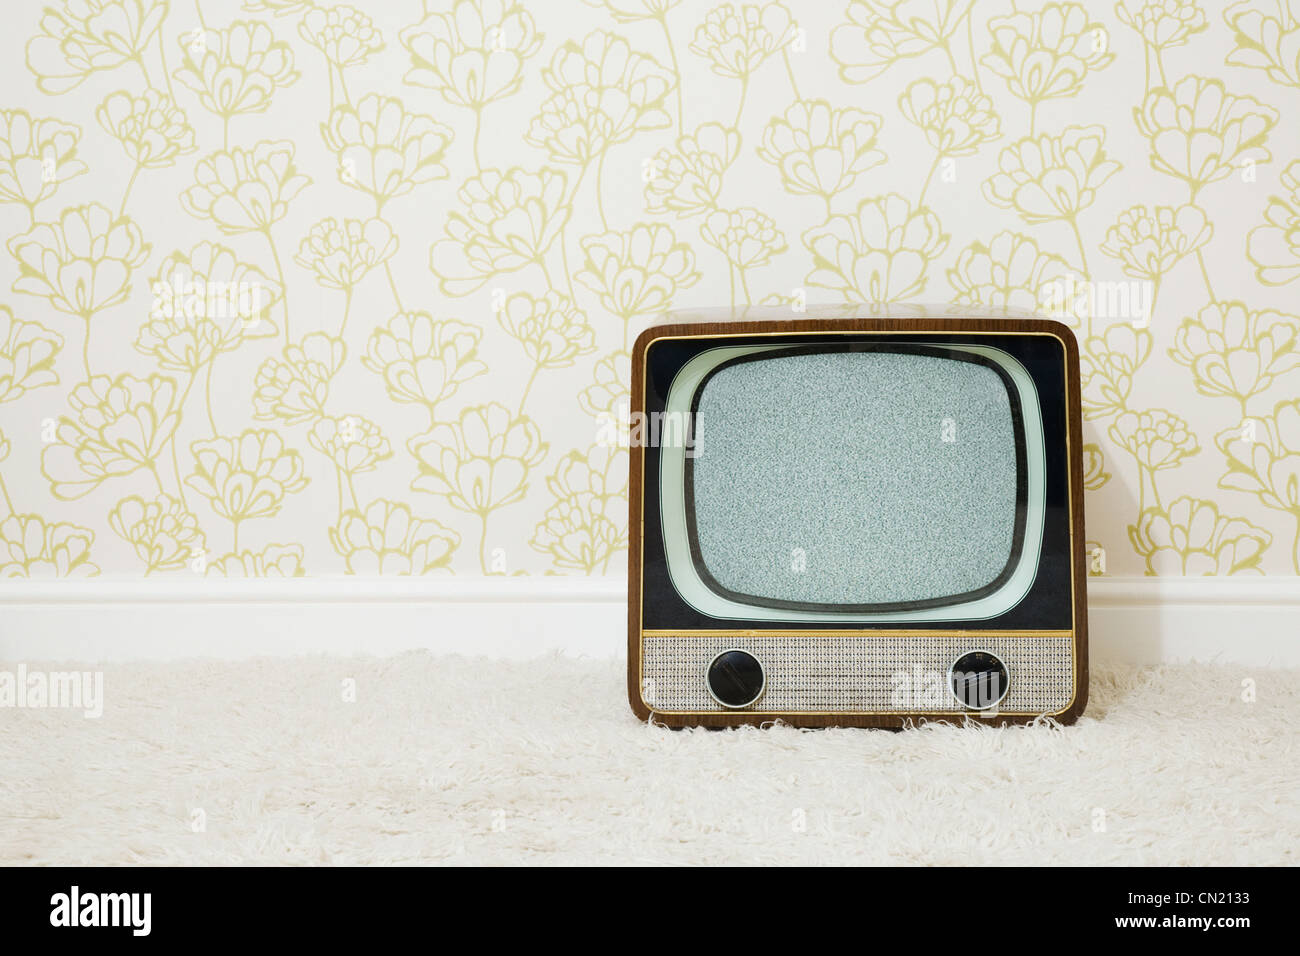 Retro television in room with patterned wallpaper Stock Photo